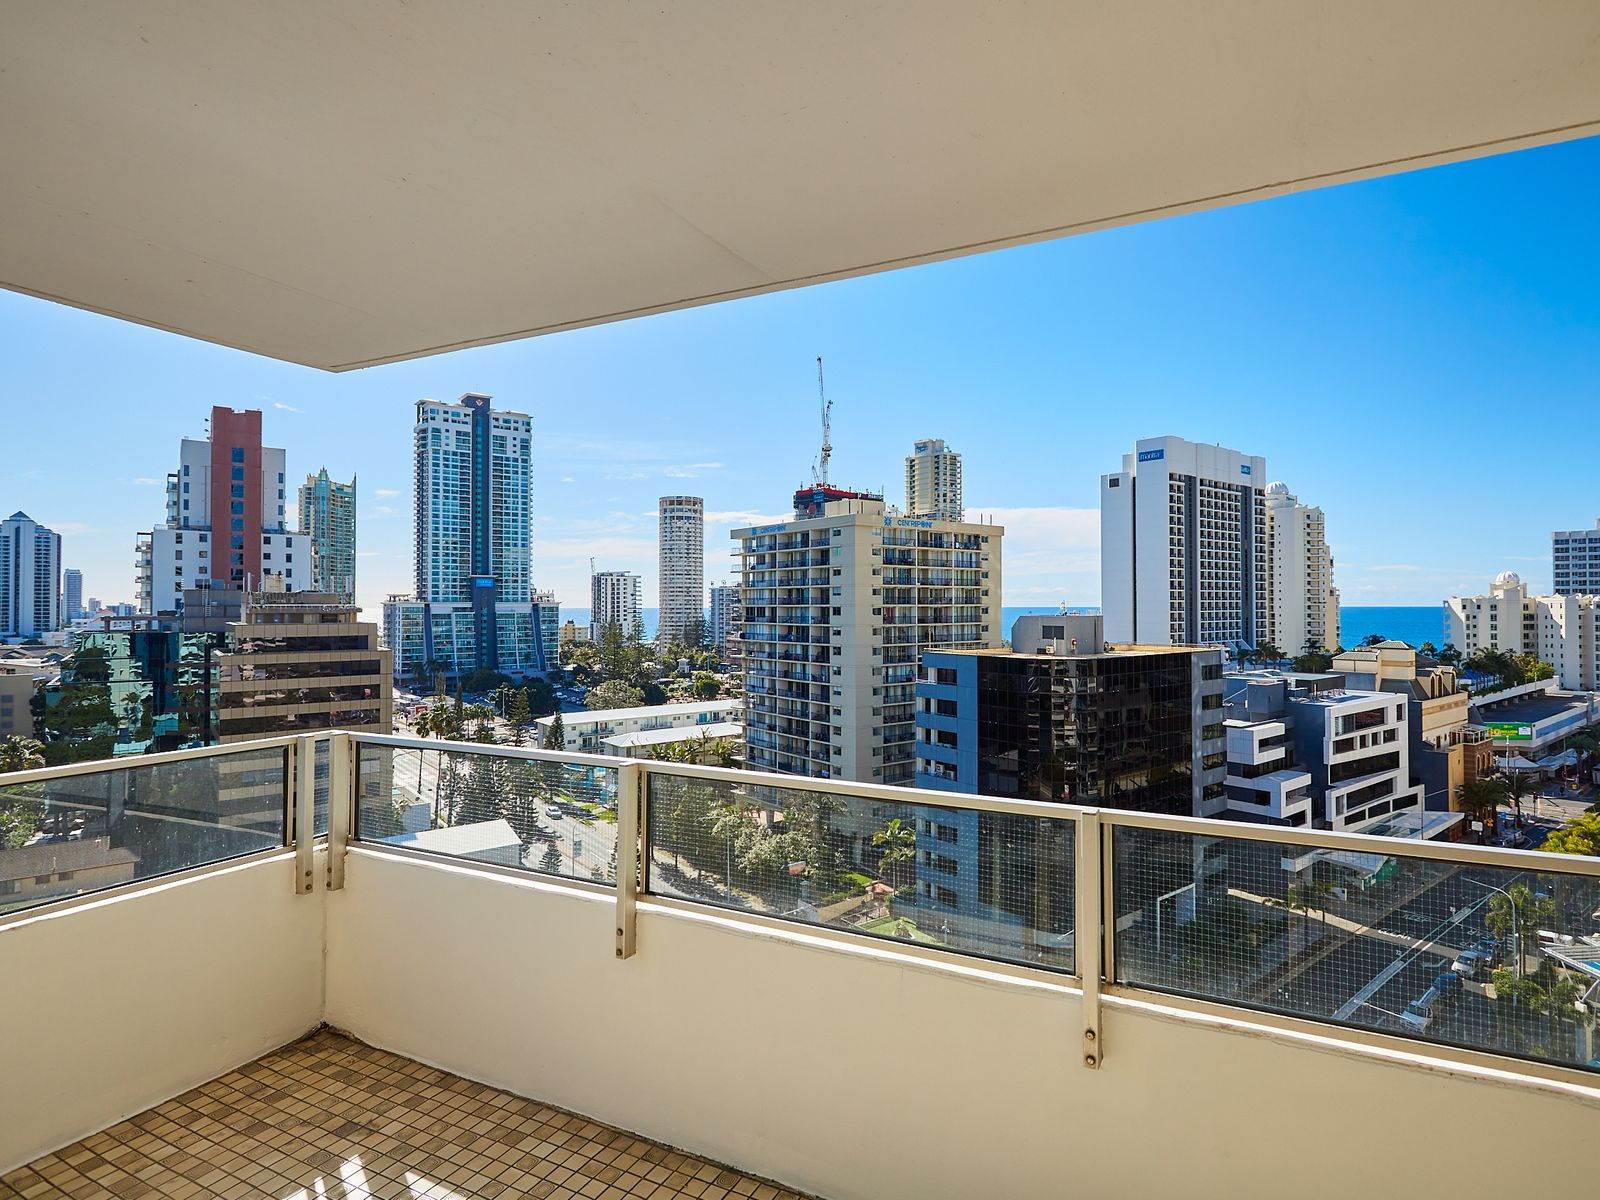 @38/40 Ferny Avenue, Surfers Paradise, QLD 4217